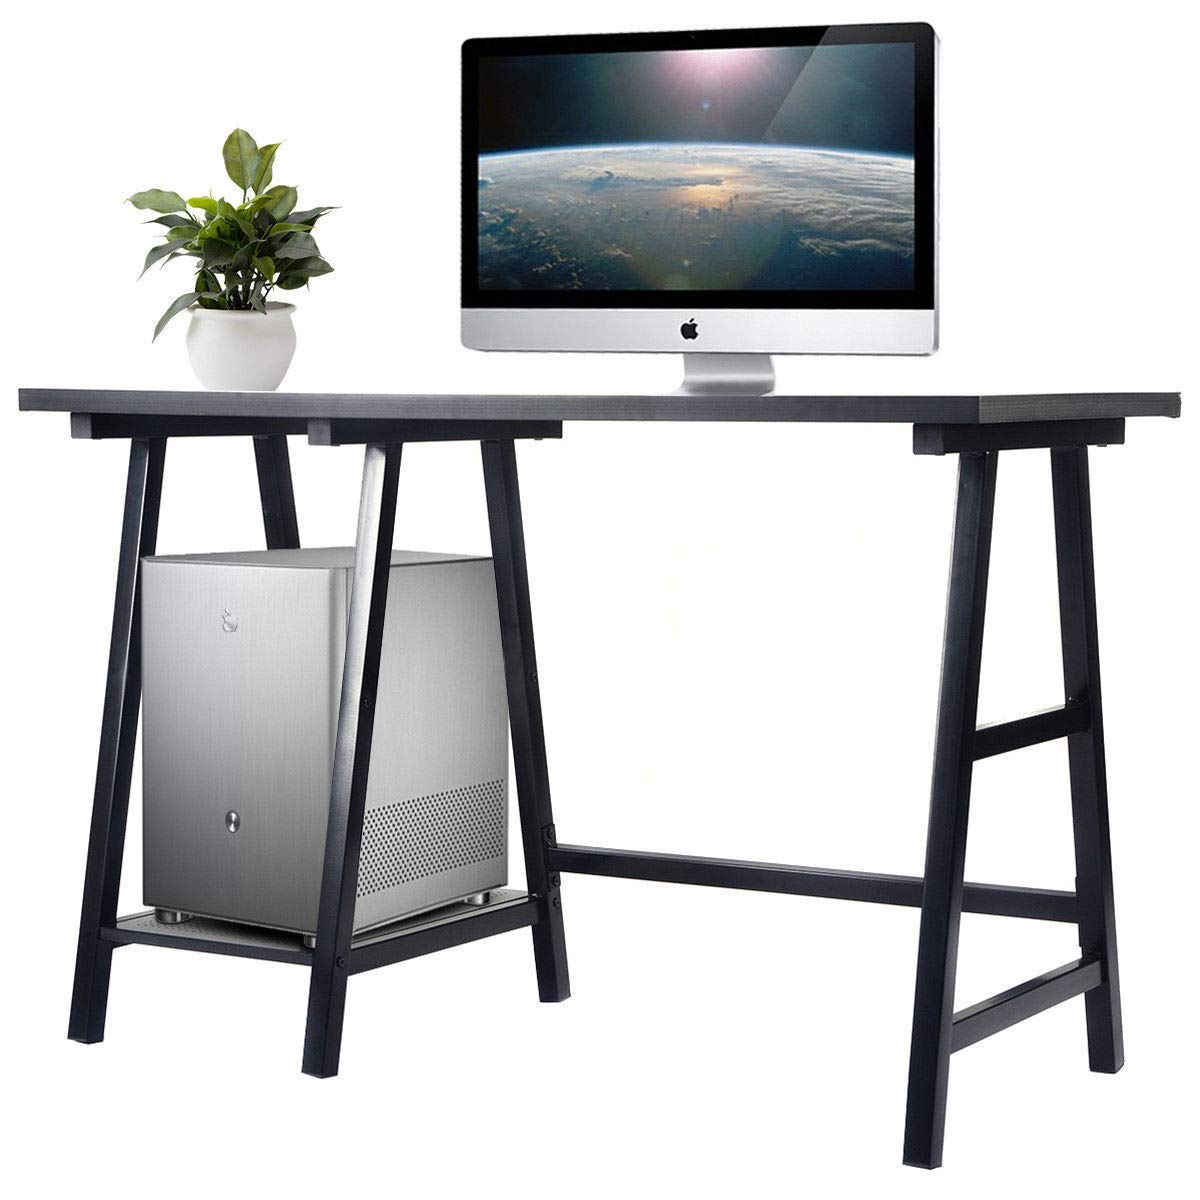 AK Energy Modern Office Trestle Desk Laptop Study Writing Table Shelf Computer Desk Black Top